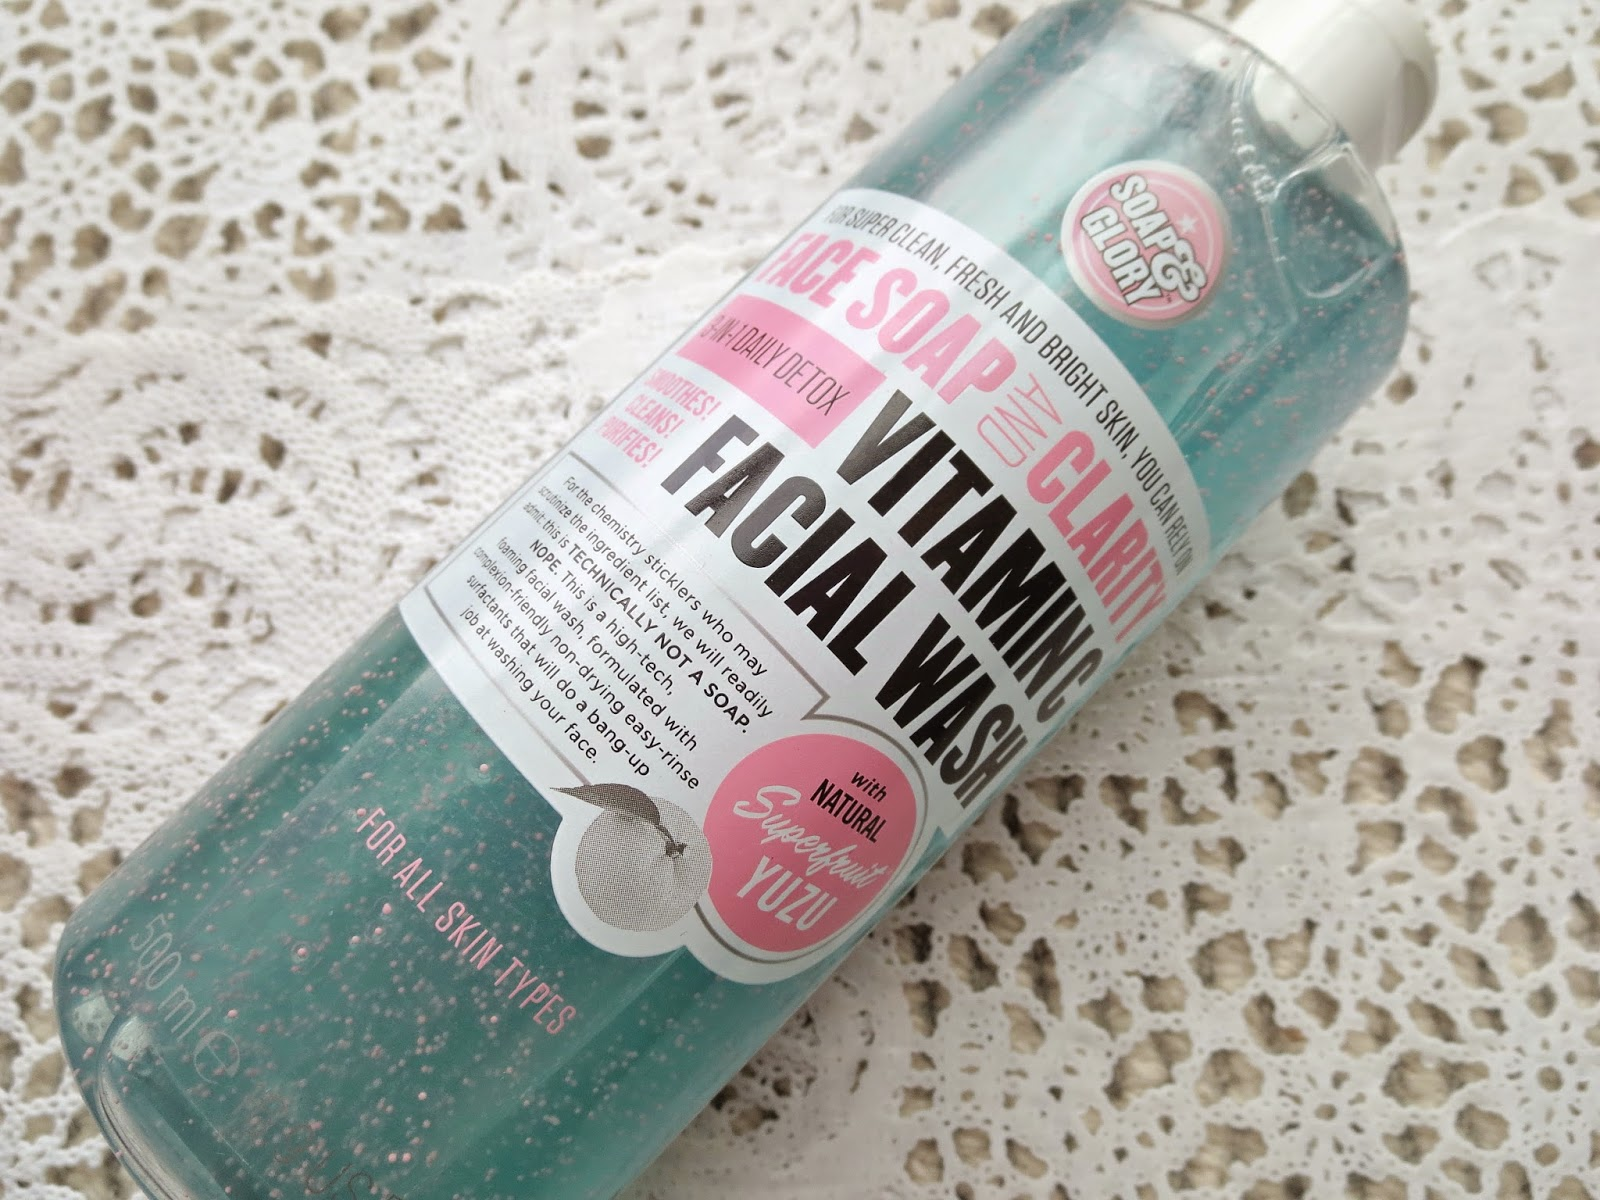 a picture of Soap&Glory Face Soap and Clarity Vitamin C Facial Wash